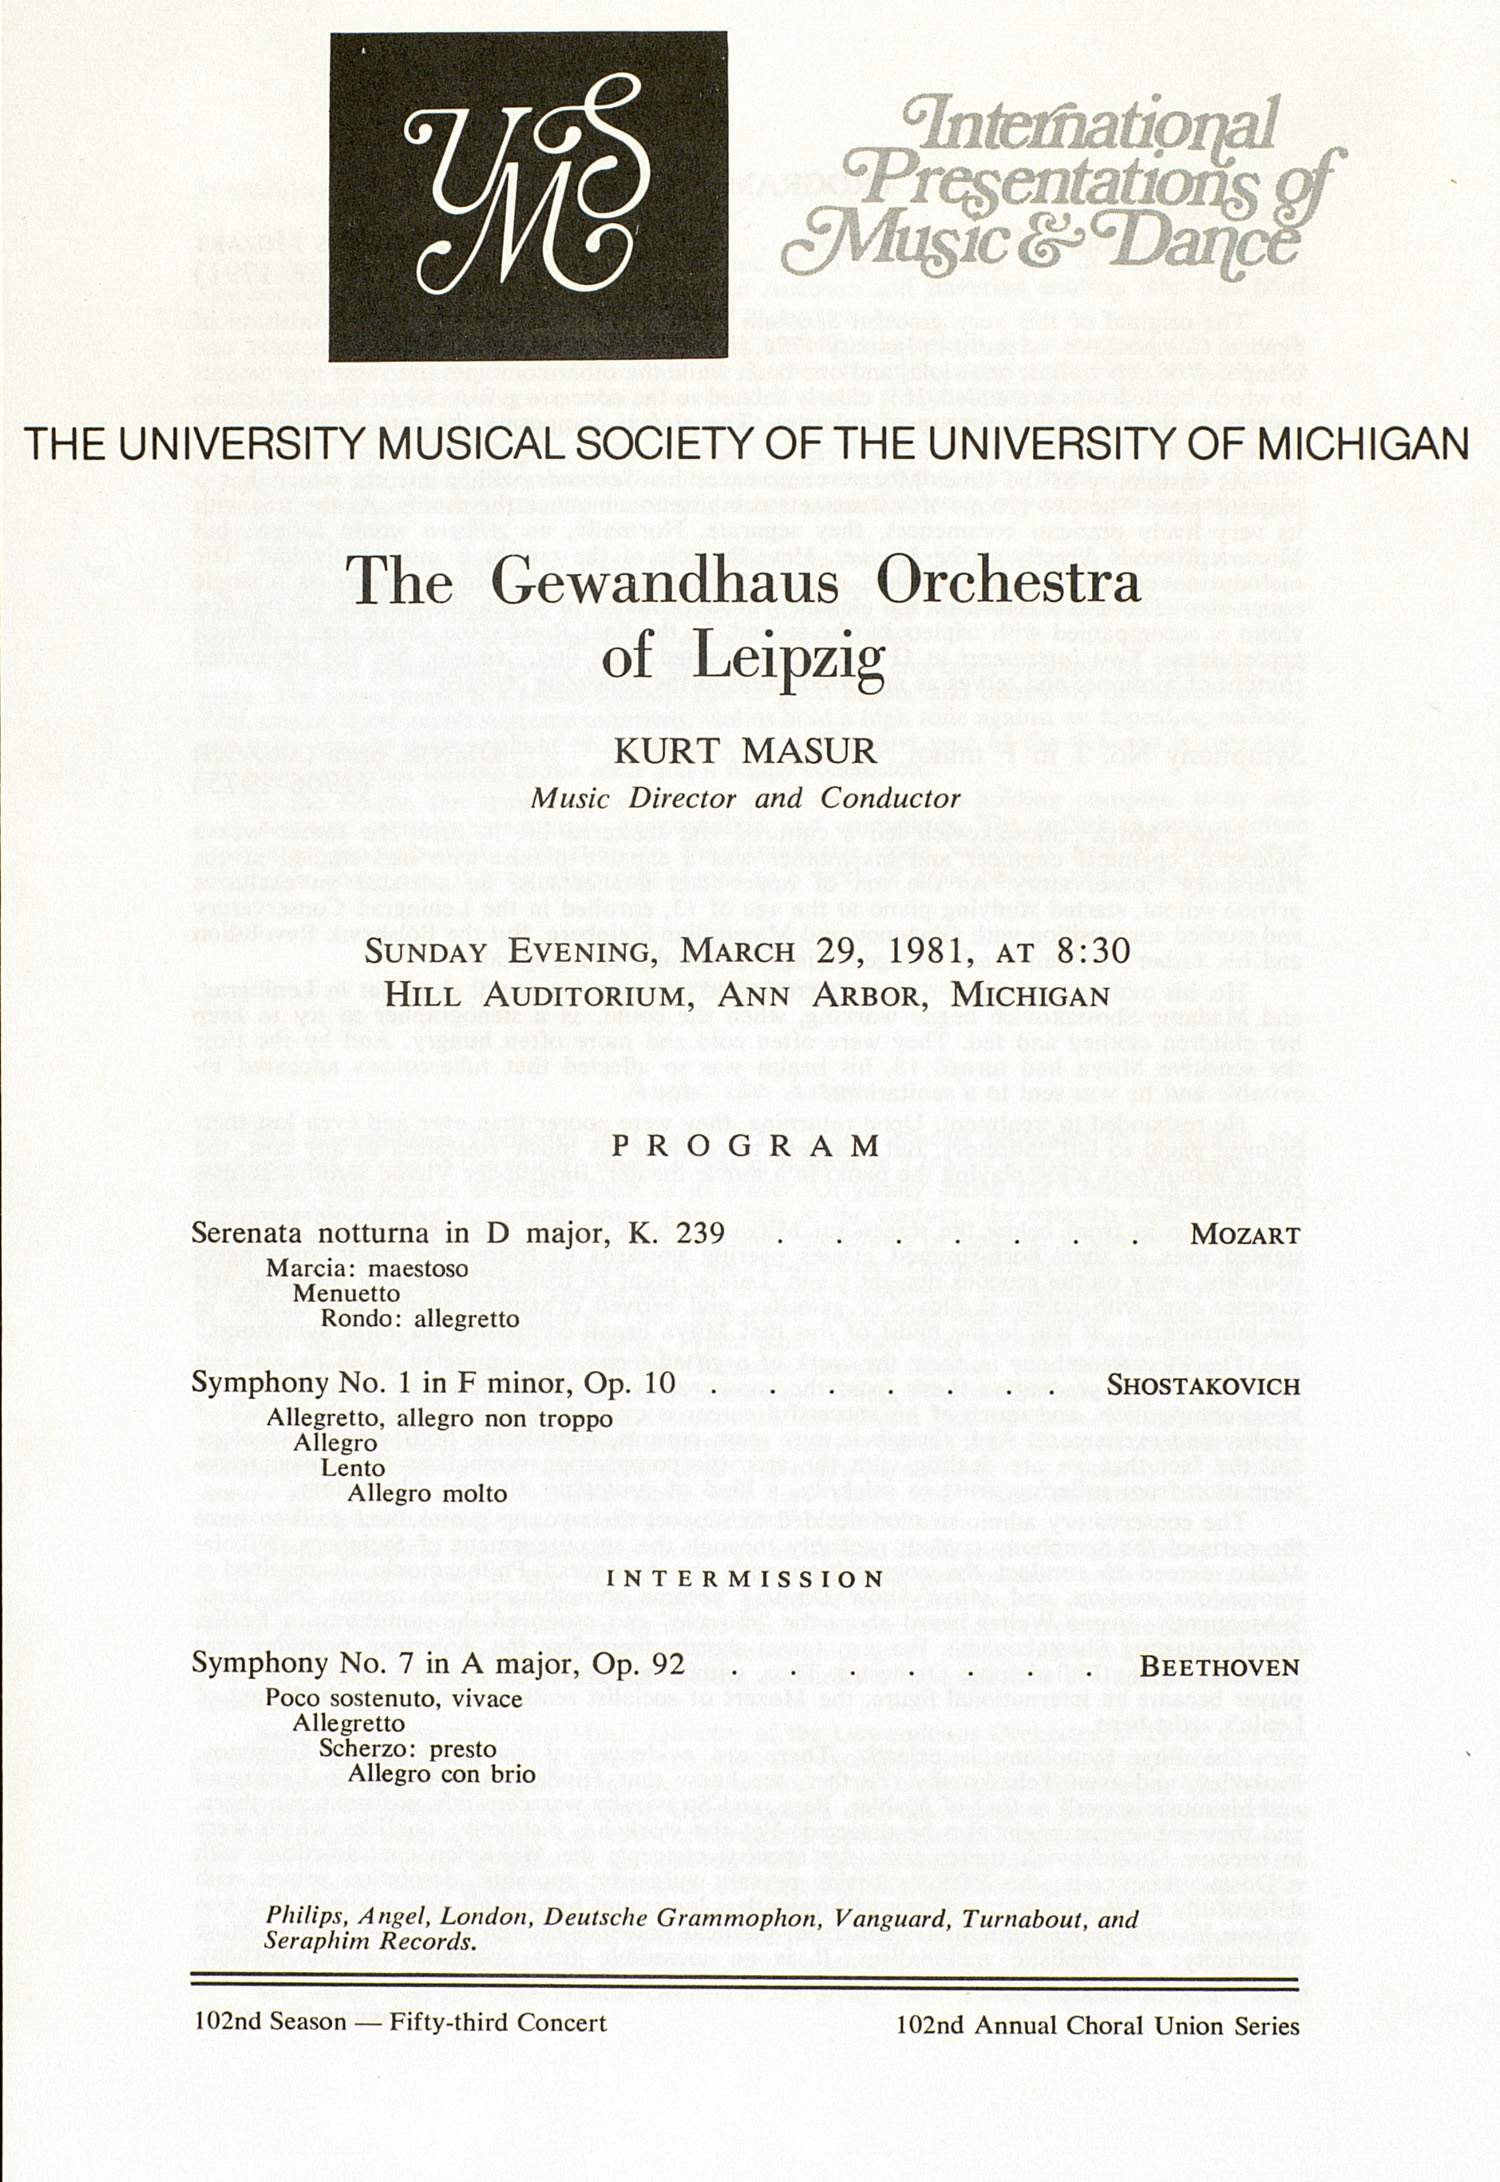 UMS Concert Program, March 29, 1981: International Presentations Of Music & Dance -- The Gewandhaus Orchestra Of Leipzig image